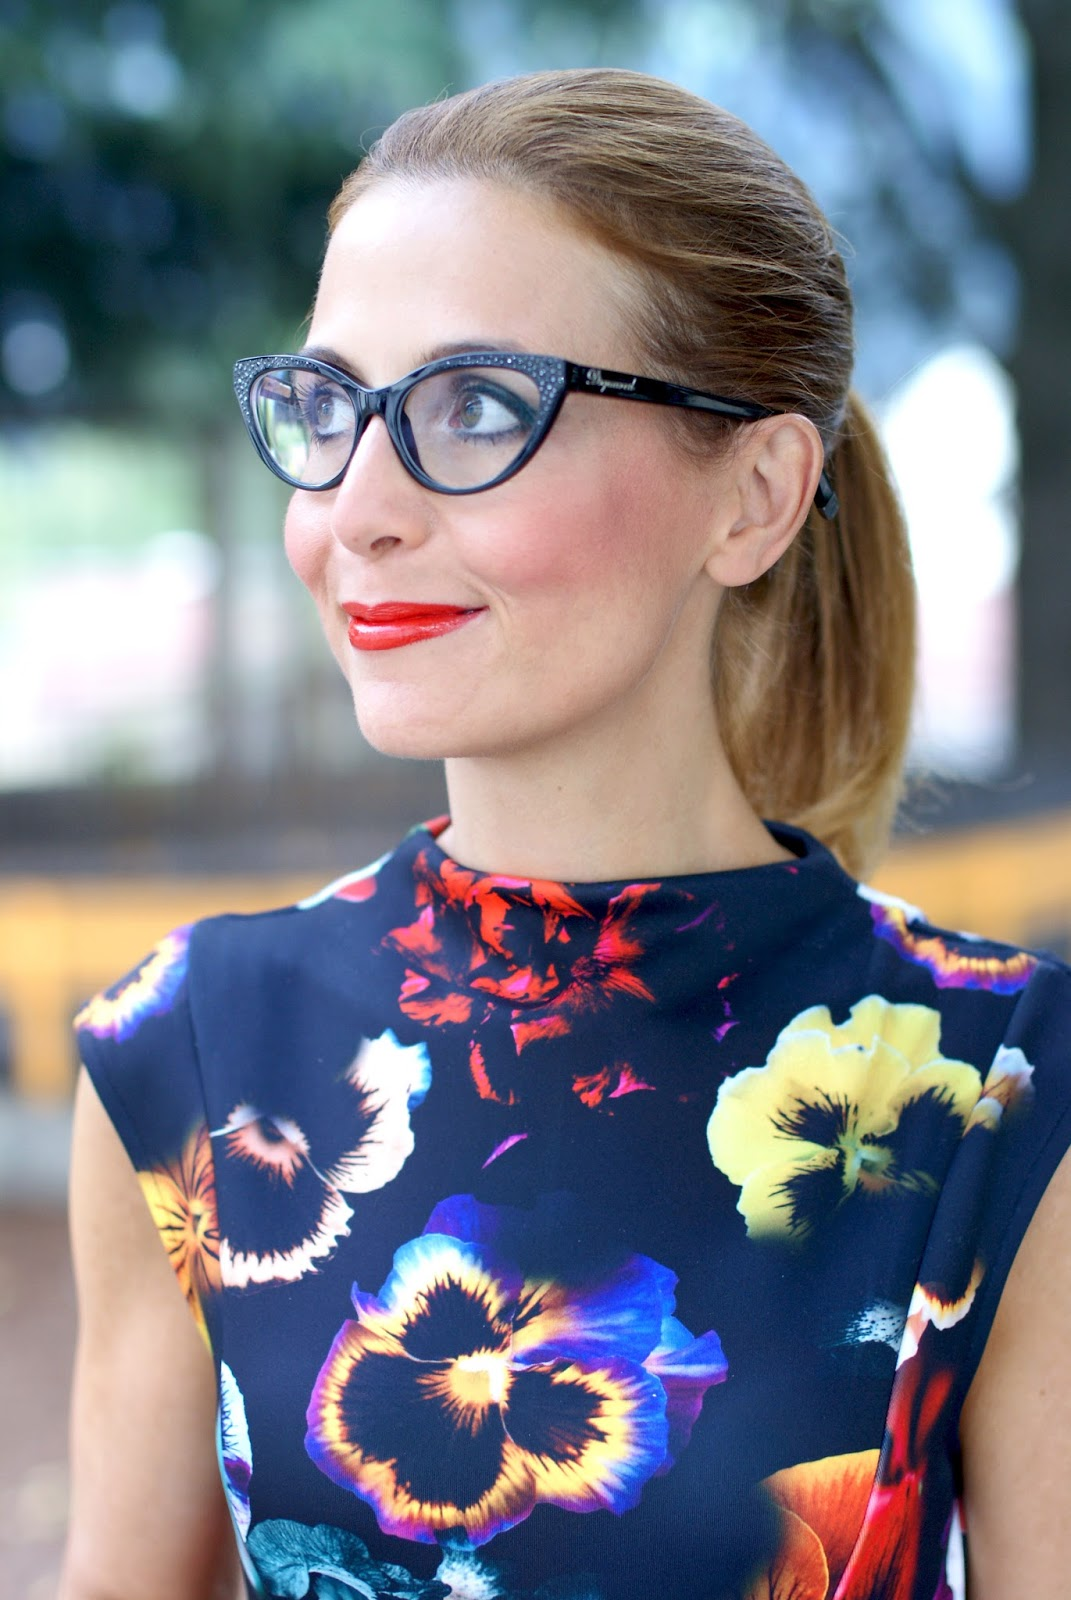 DSquared2 Muriel eyeglasses found on Giarre.com and Asos floral scuba dress on Fashion and Cookies fashion blog, fashion blogger style